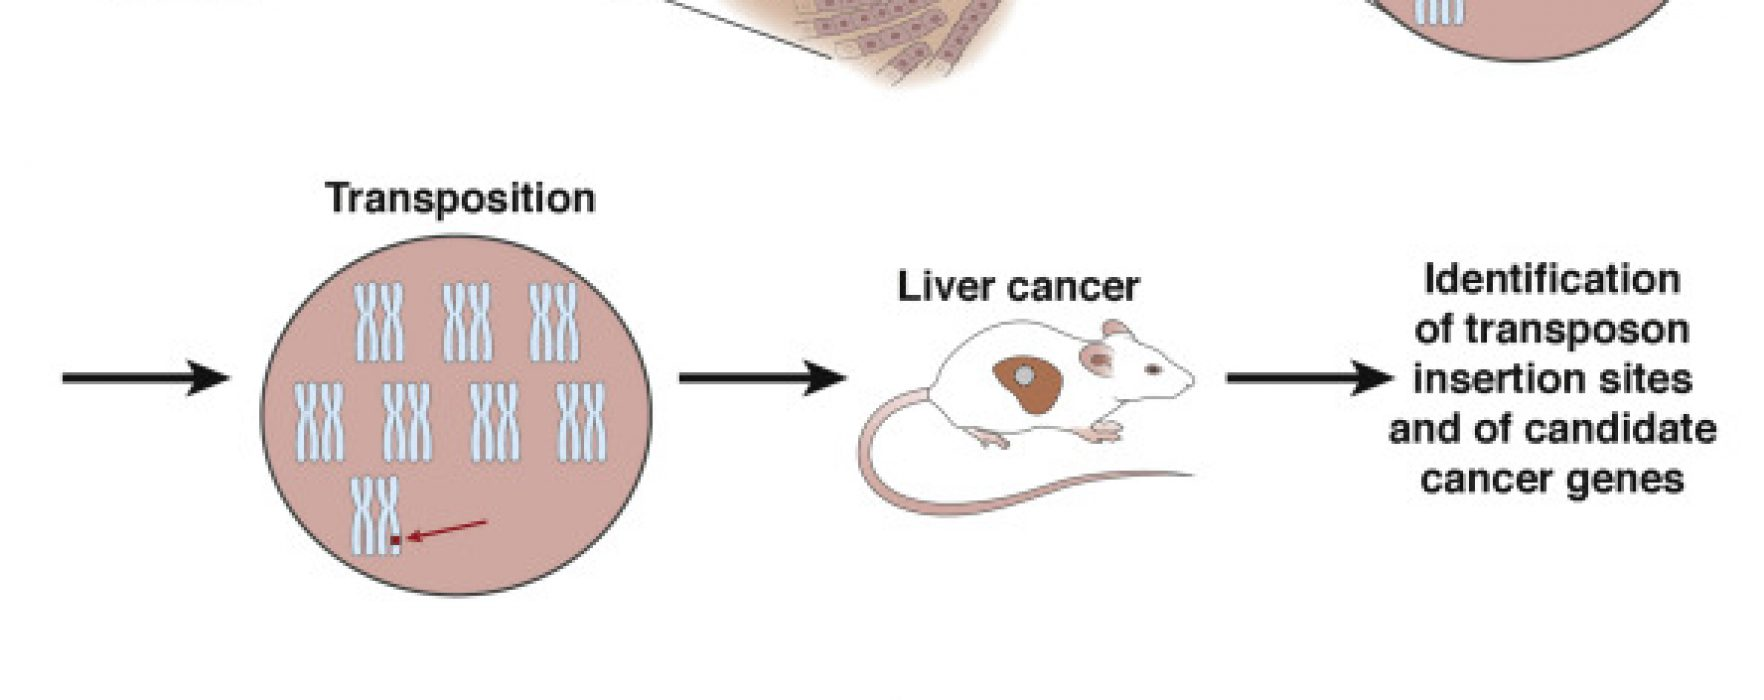 A Forward Genetic Screen Identifies Suppressors of Hepatocellular Carcinogenesis